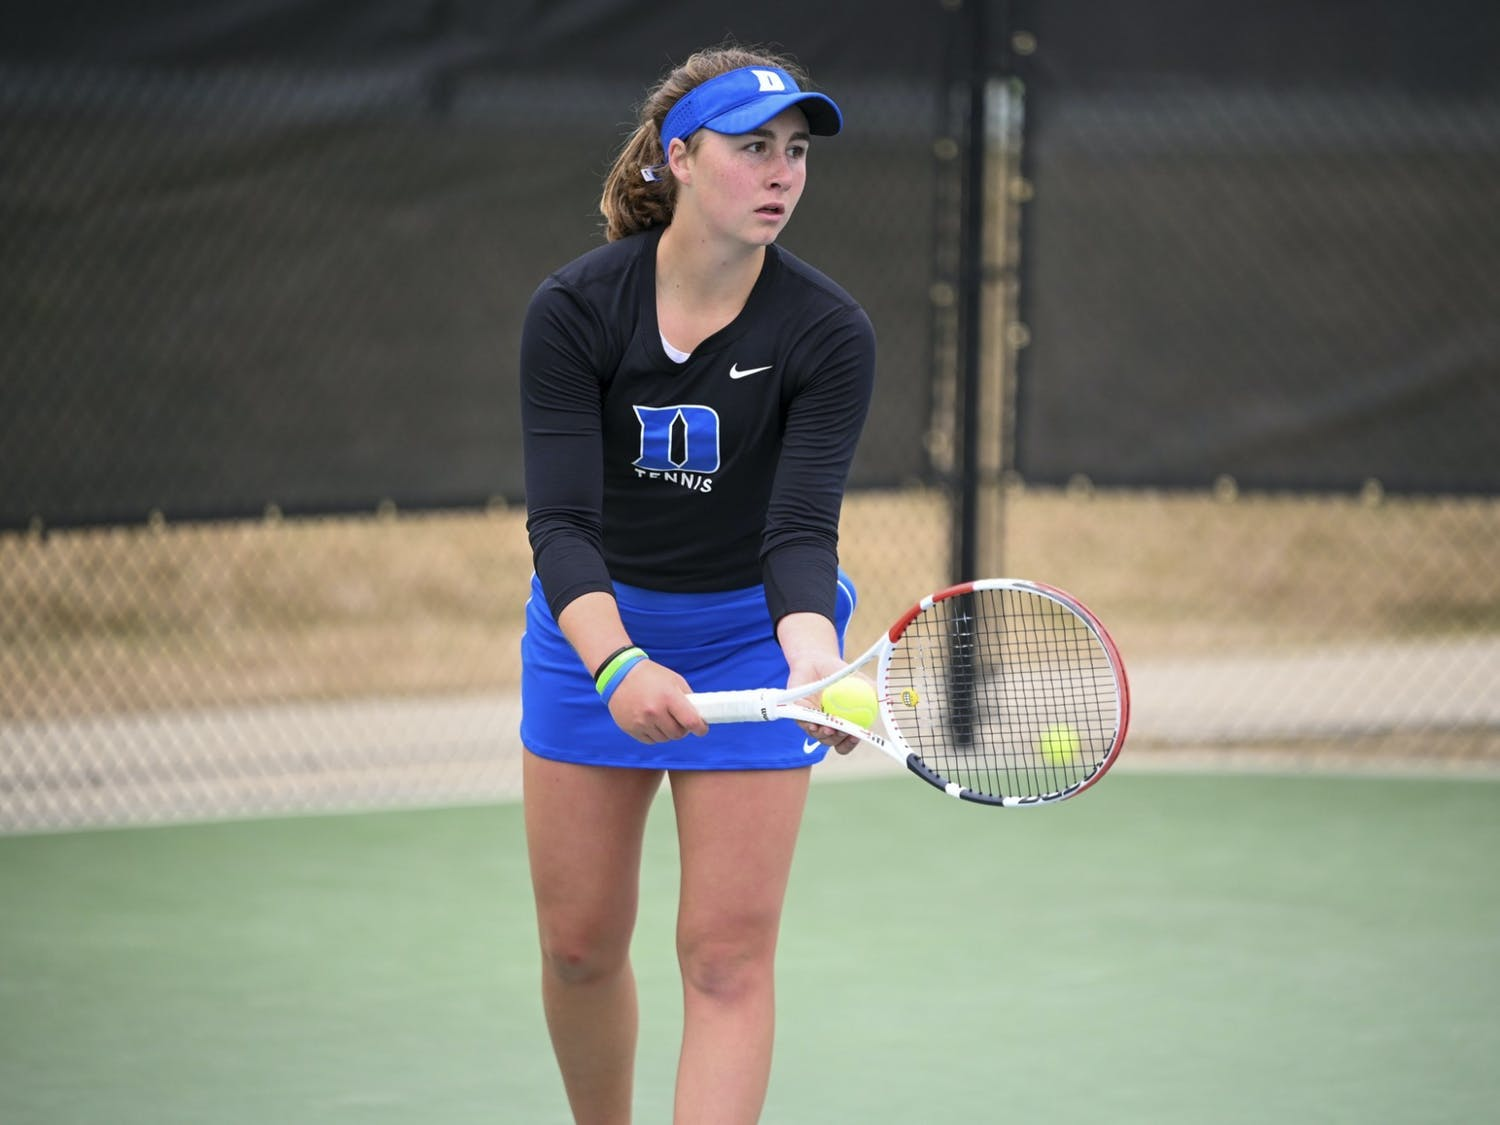 Chloe Beck earned a top-ten victory Sunday.